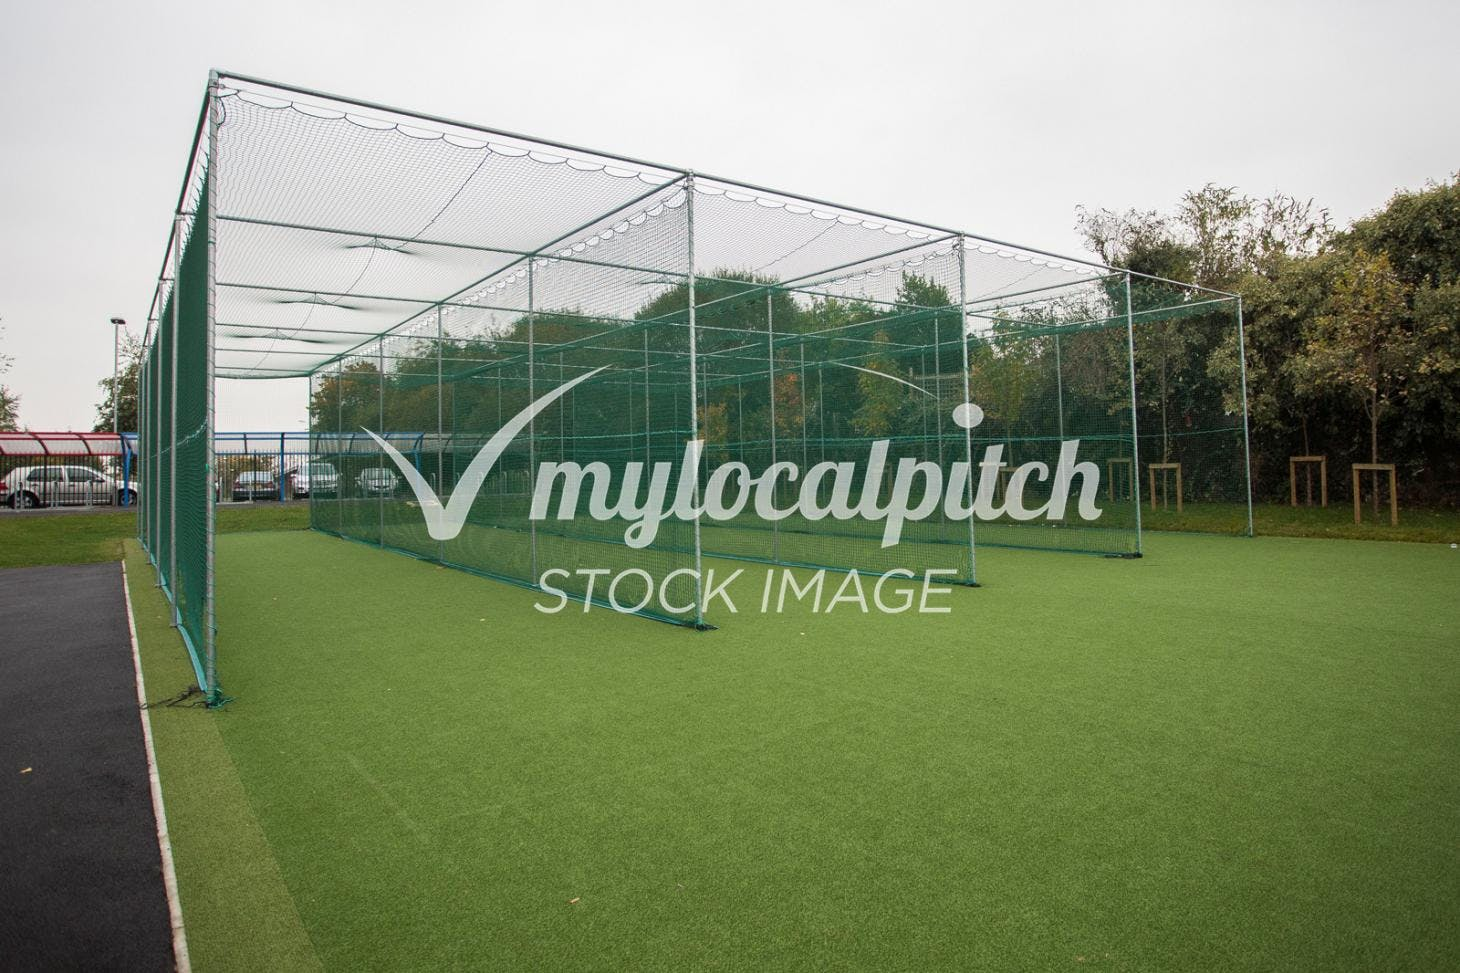 King's College Sports Ground - New Malden Nets | Artificial cricket facilities